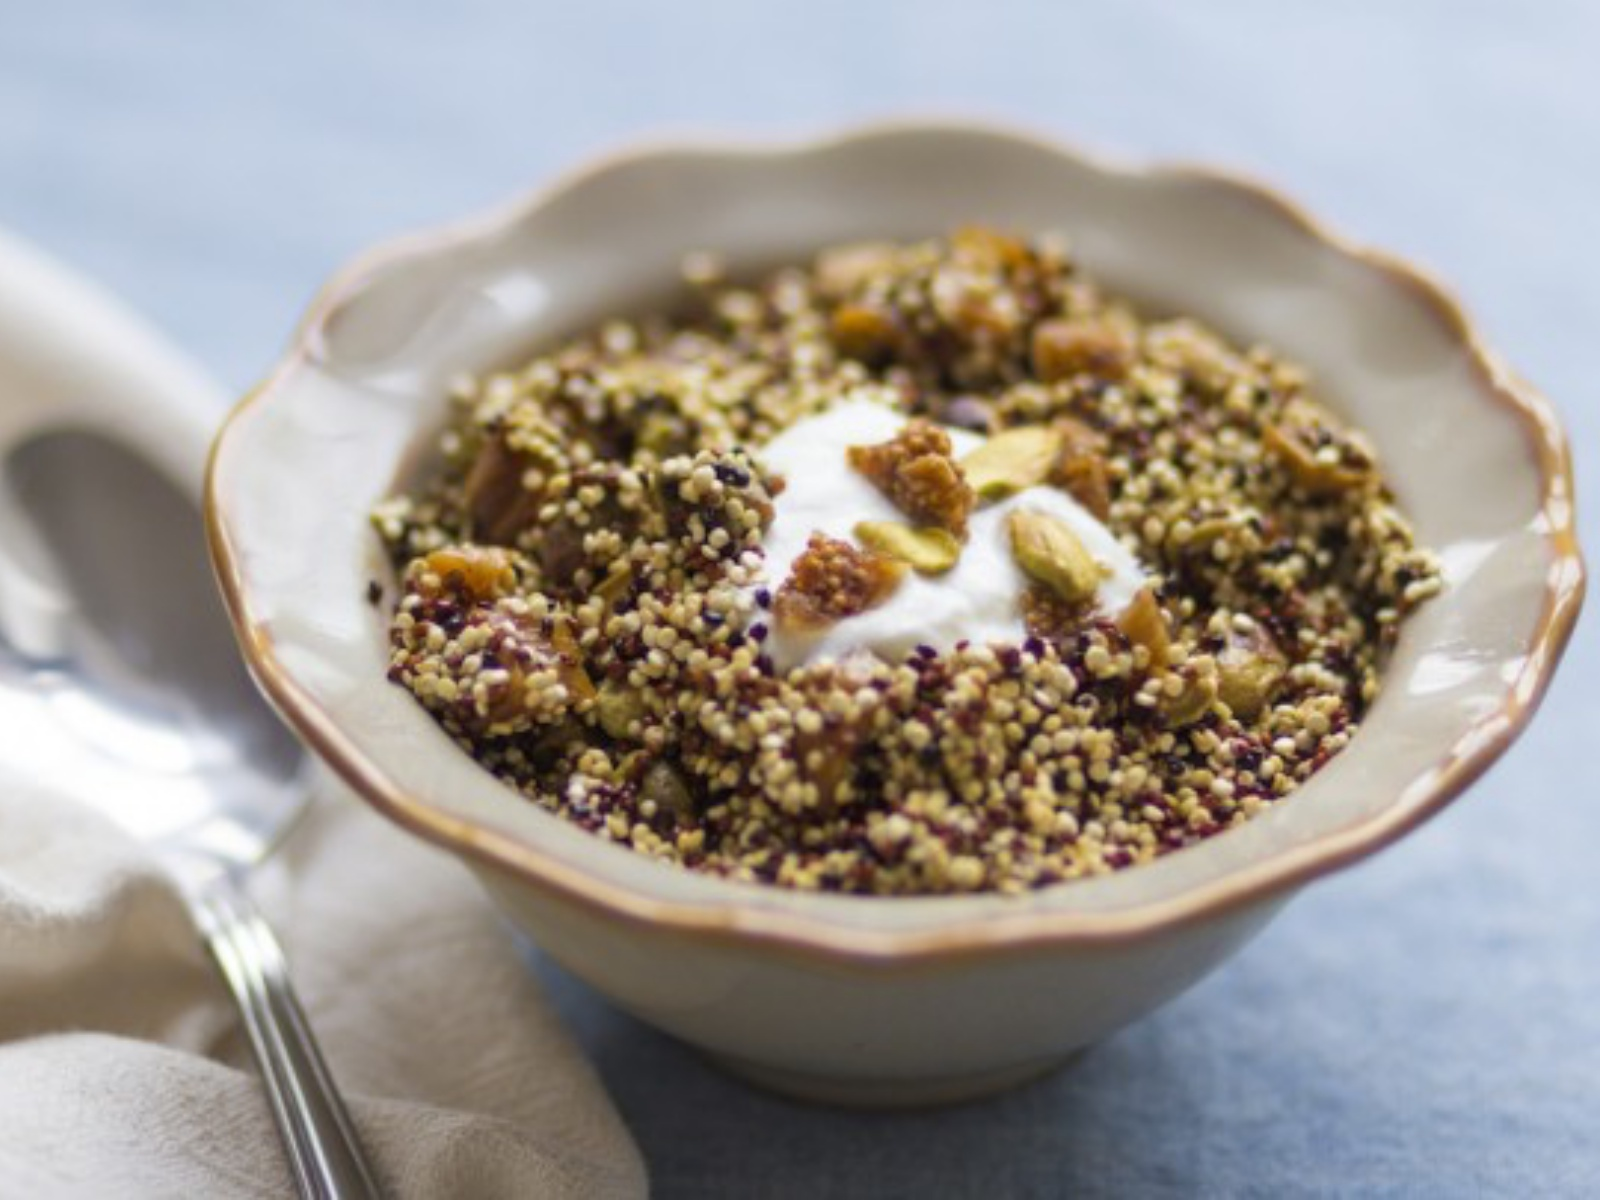 Toasted Quinoa Cereal with Pistachios and Figs